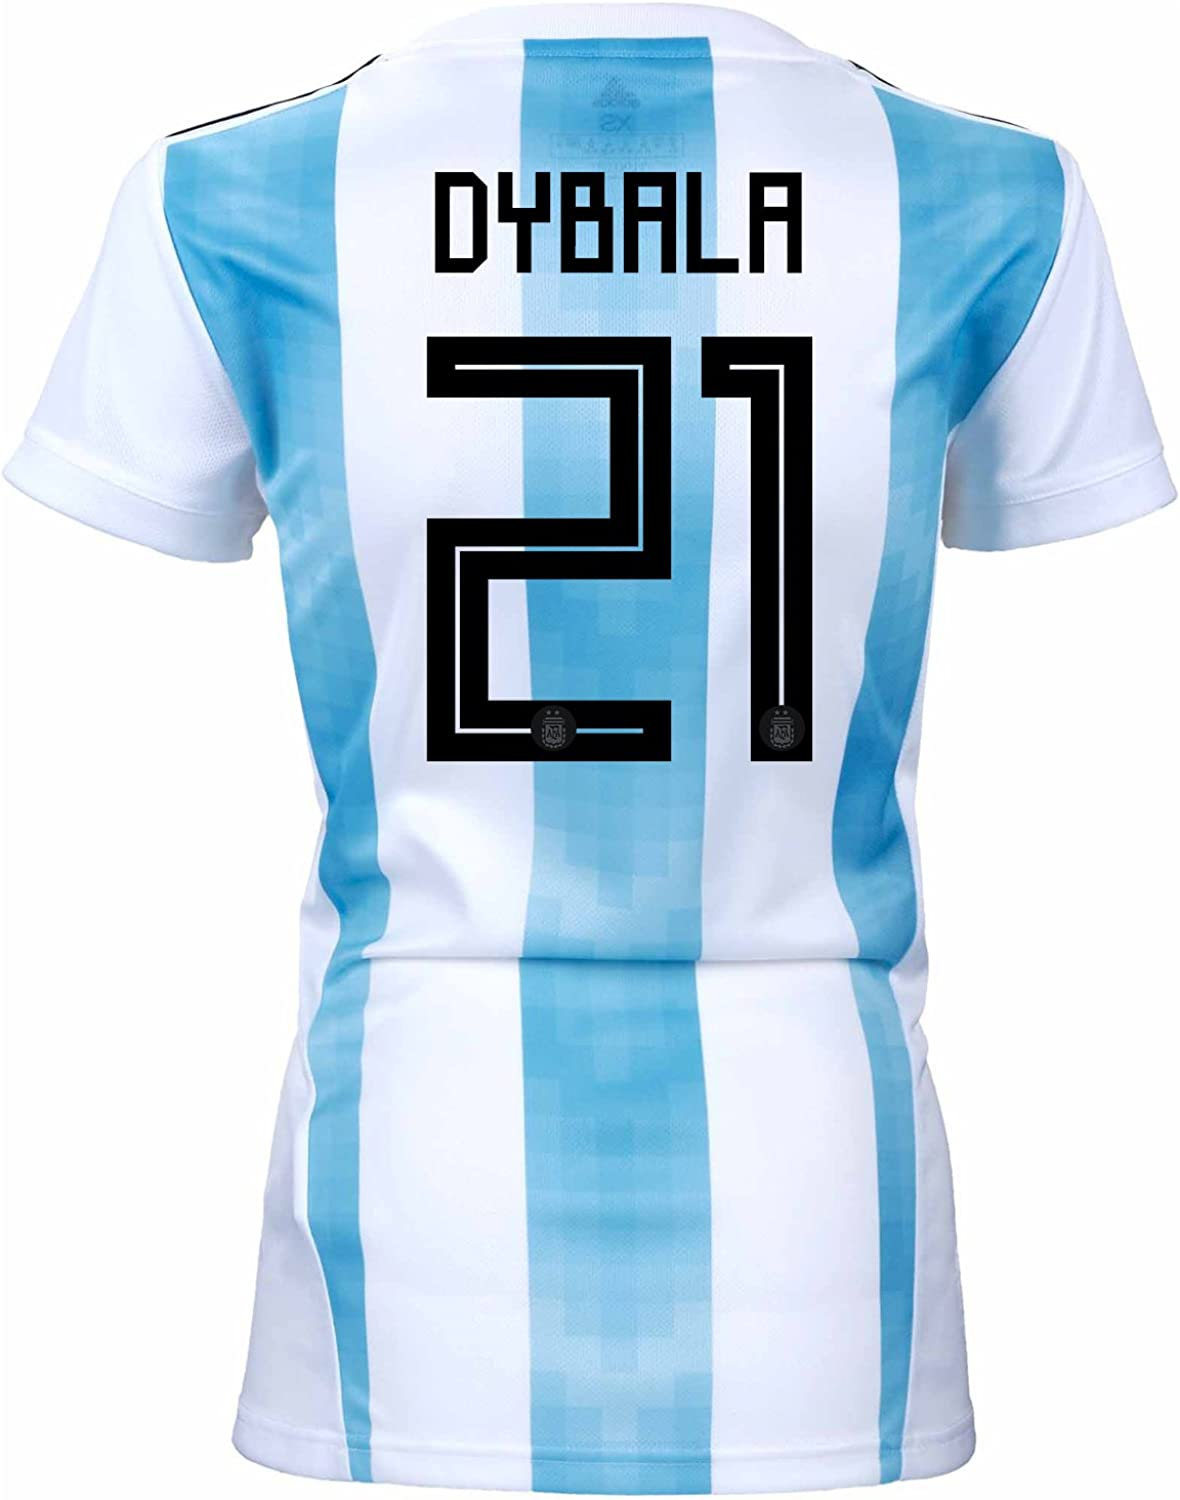 Adidas Dybala  21 silverina Home Women's Soccer Jersey World Cup Russia 2018